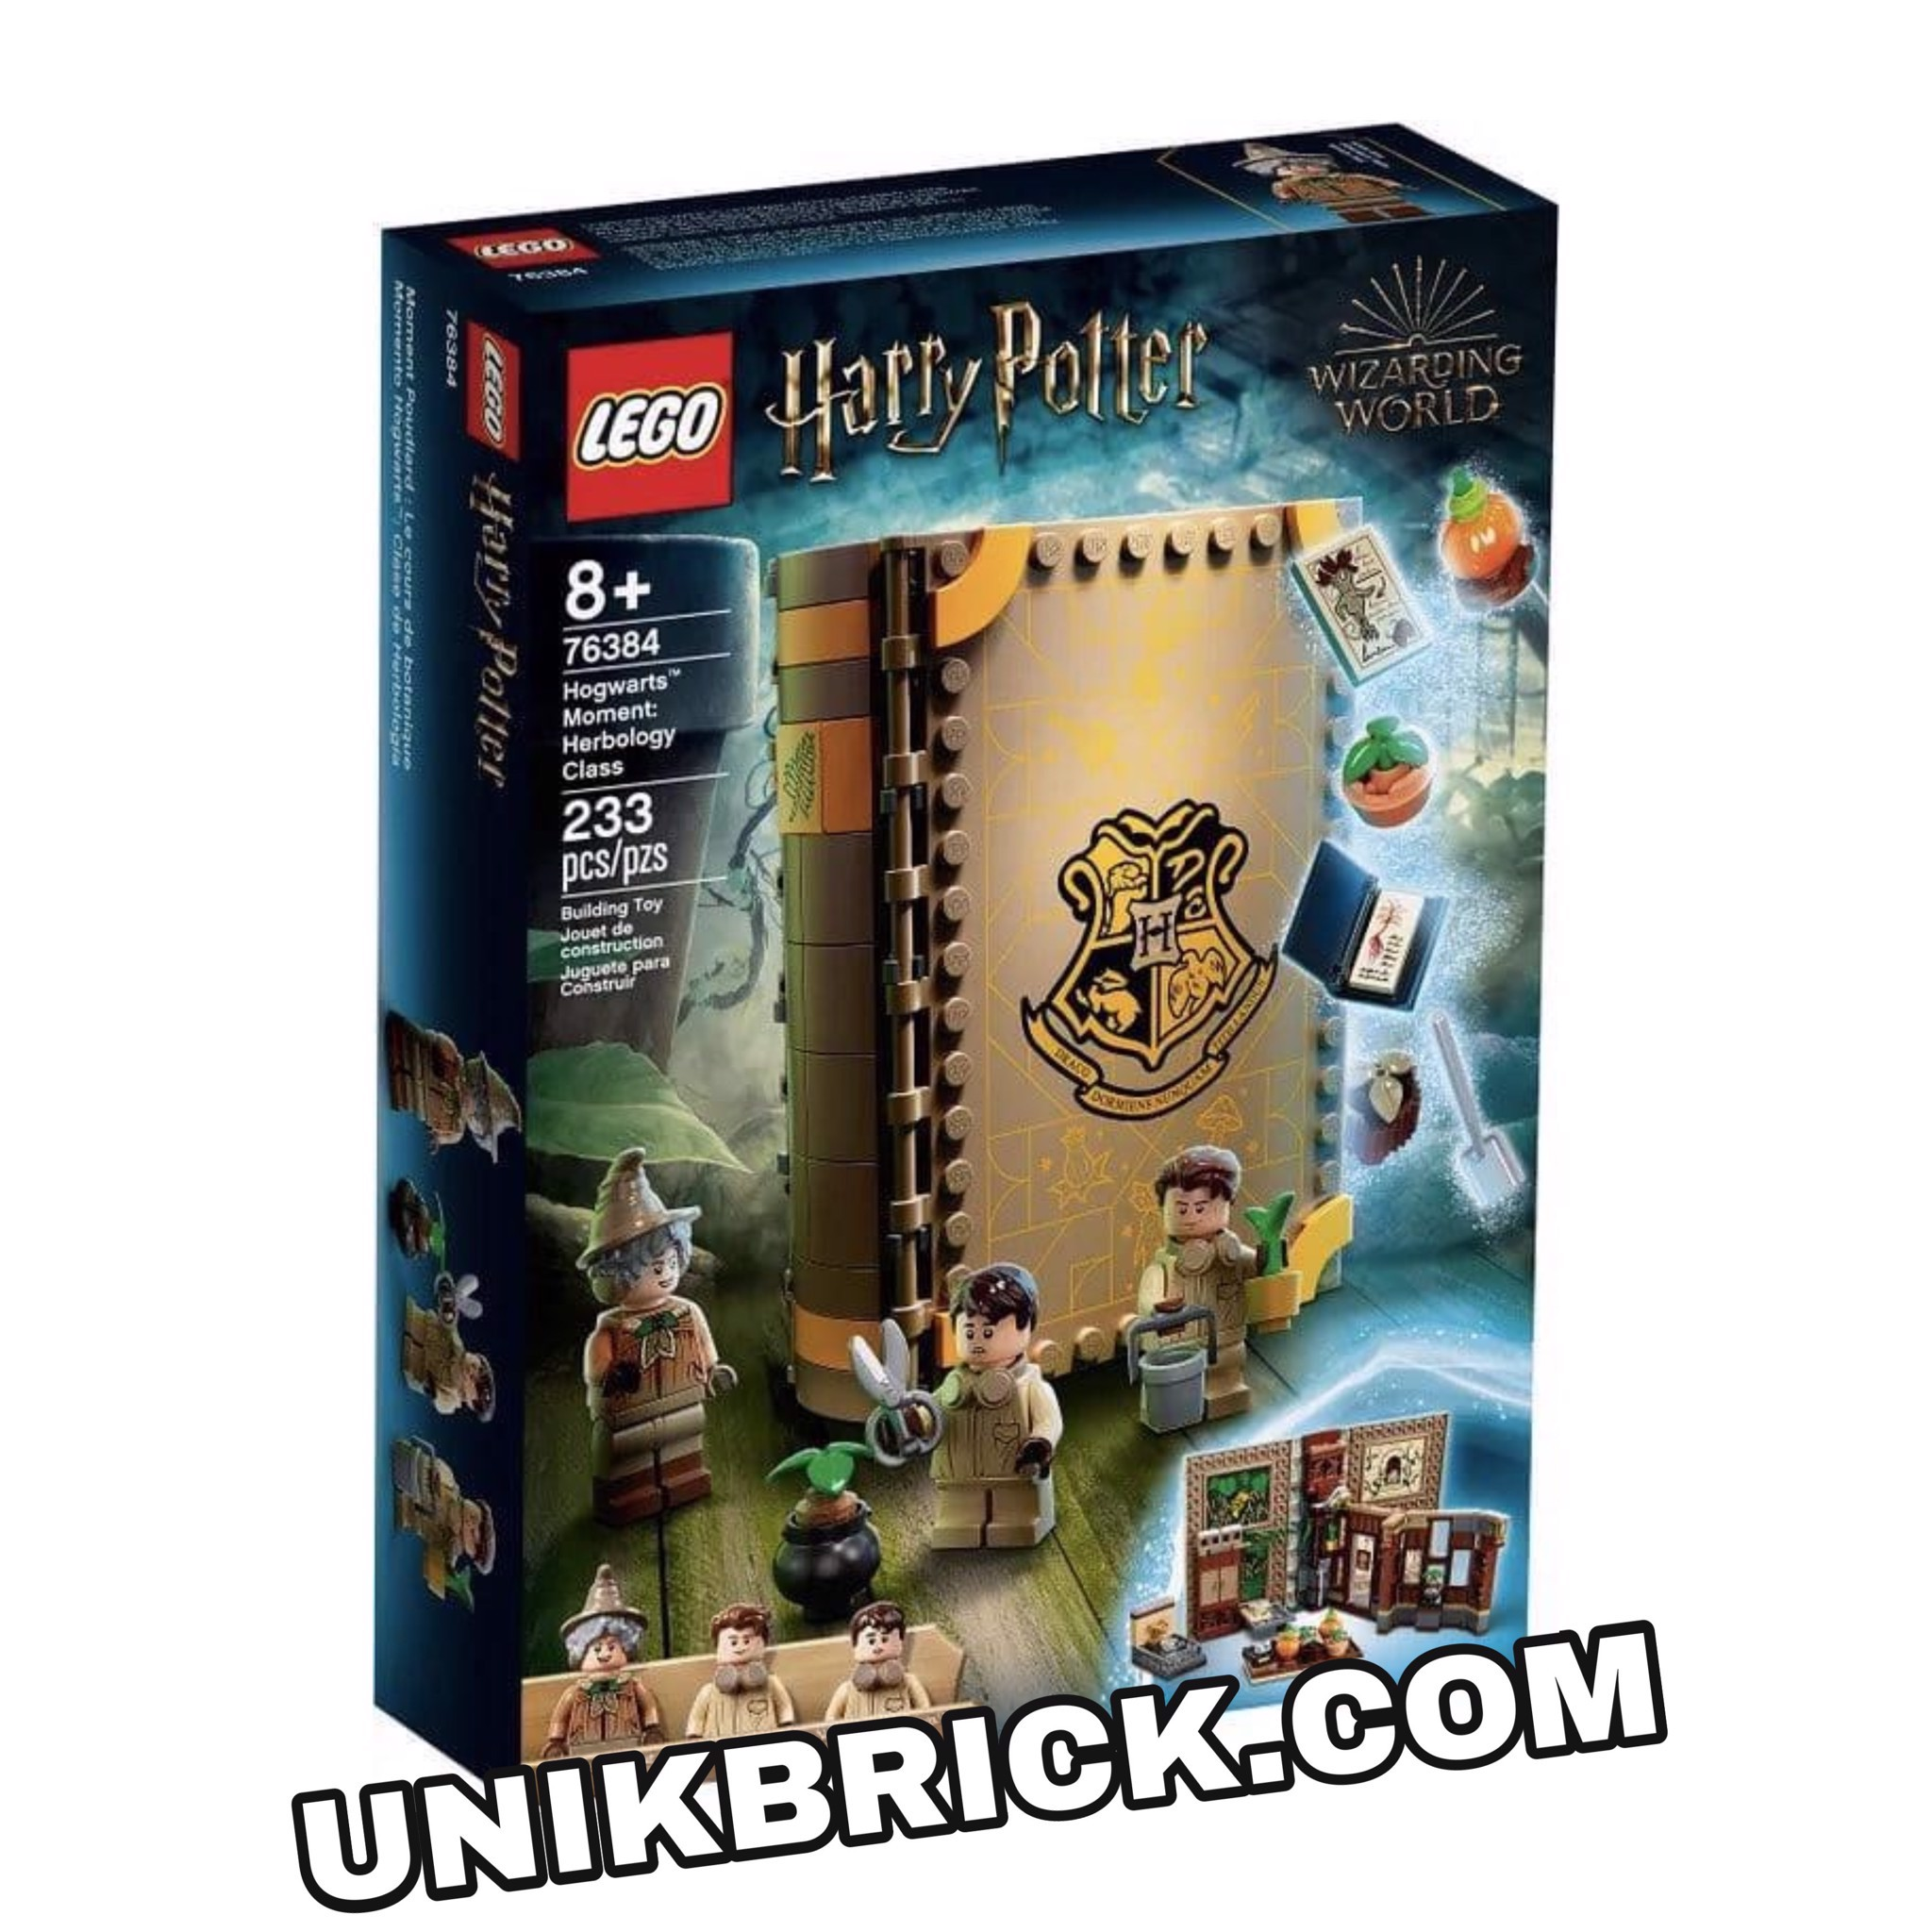 [HÀNG ĐẶT/ ORDER] LEGO Harry Potter 76384 Hogwarts Moment: Herbology Class